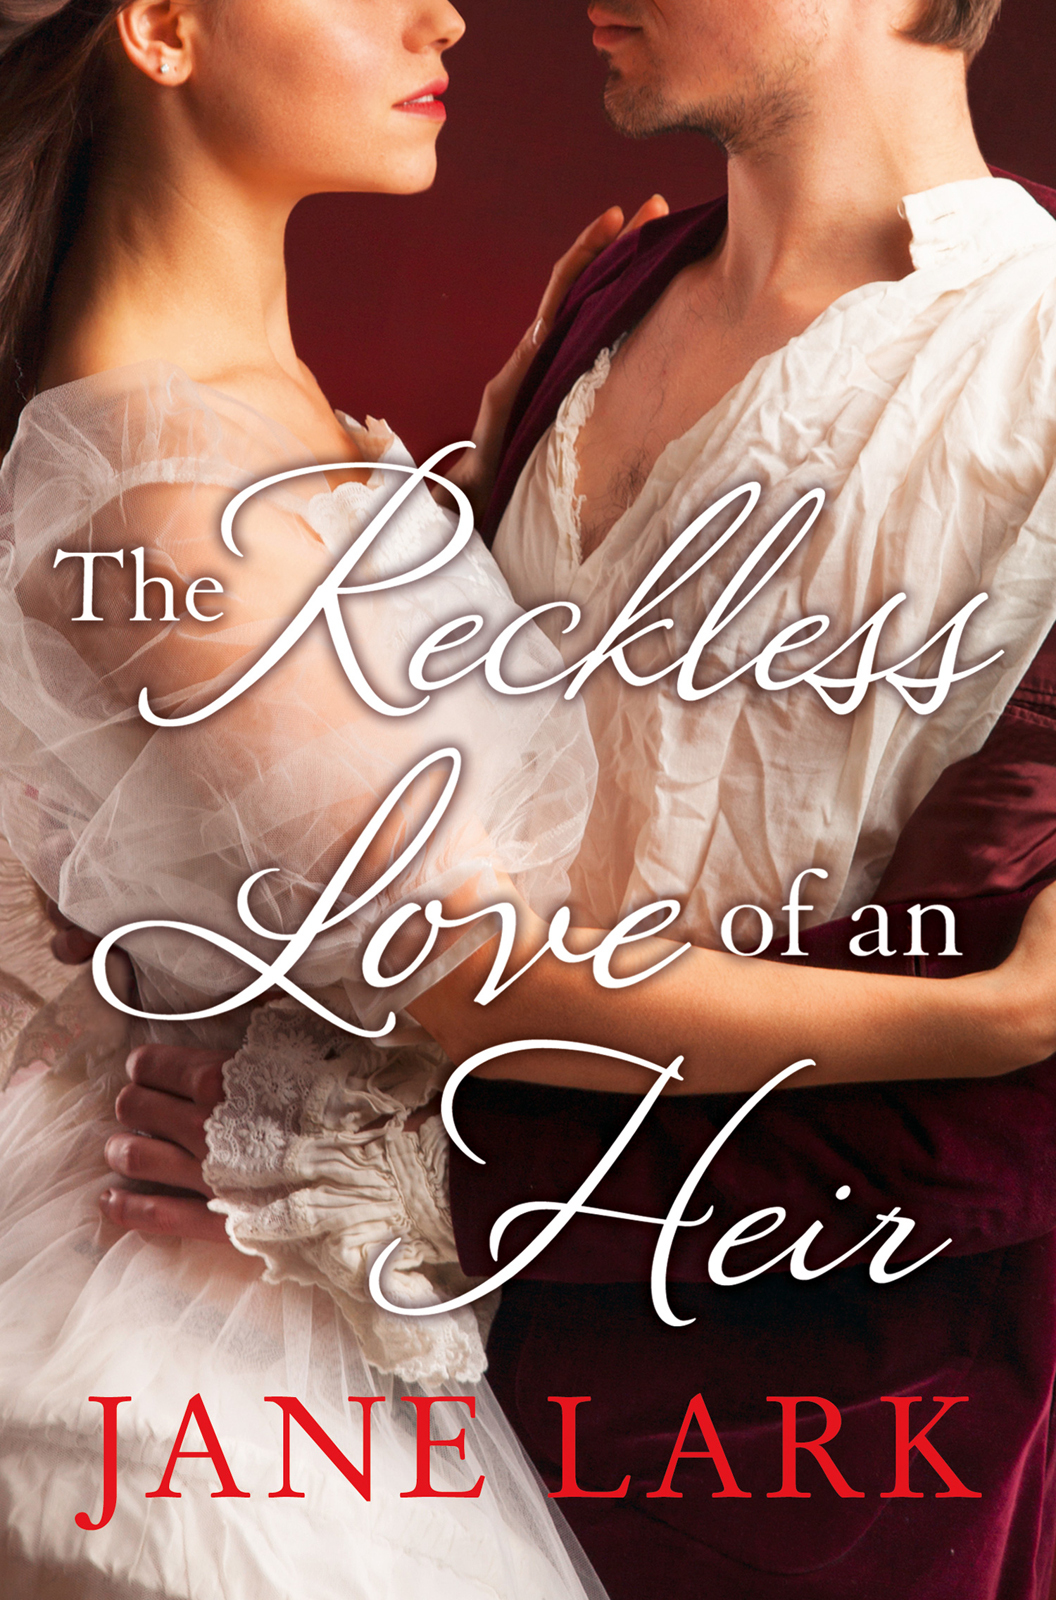 Jane Lark The Reckless Love of an Heir: An epic historical romance perfect for fans of period drama Victoria jane lark the secret love of a gentleman